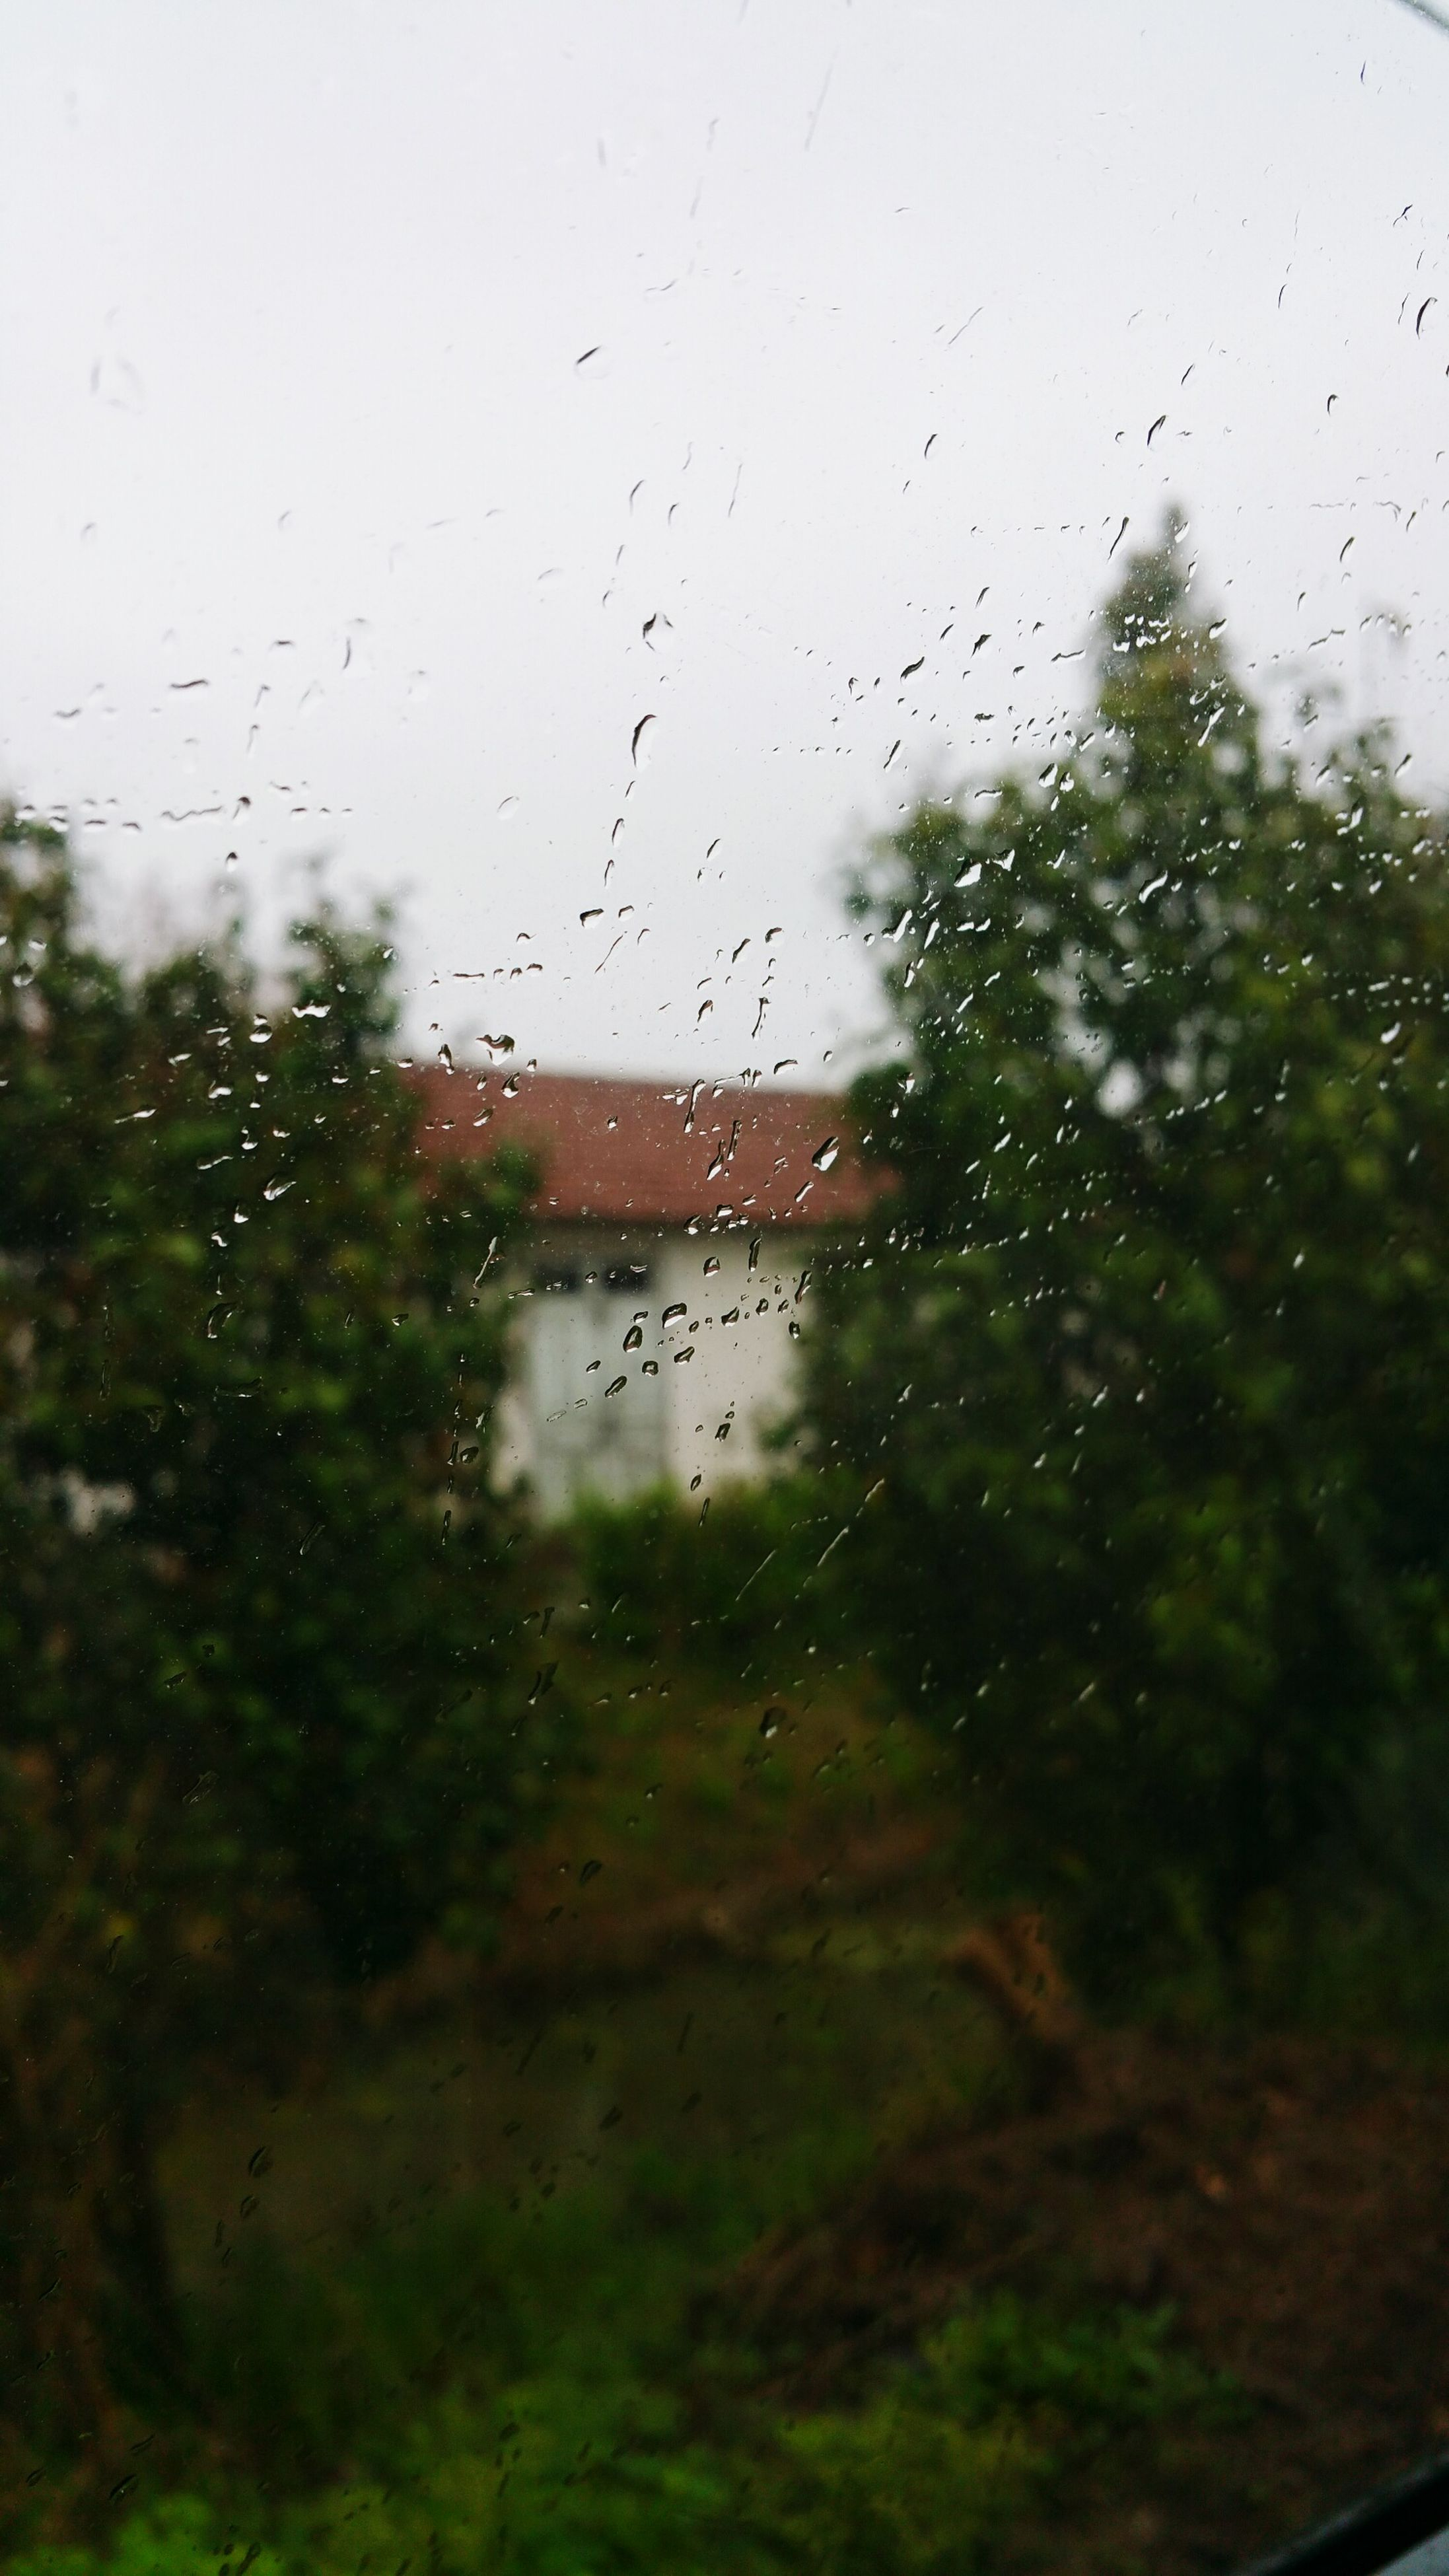 drop, wet, window, water, transparent, rain, glass - material, raindrop, weather, indoors, sky, season, glass, tree, focus on foreground, built structure, monsoon, nature, architecture, no people